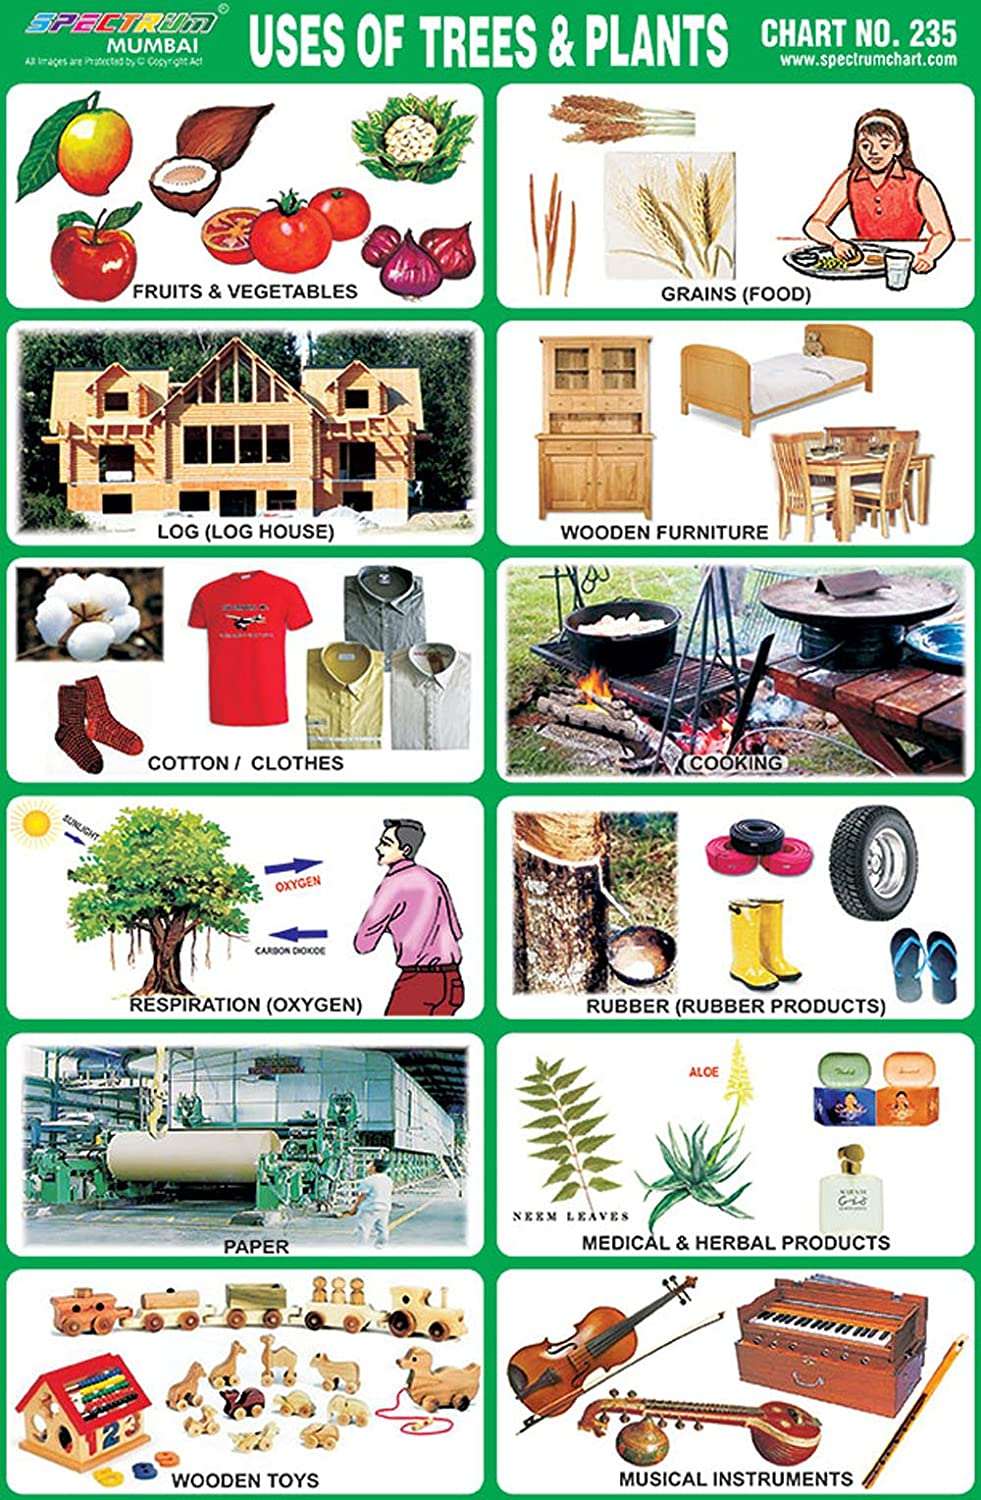 Uses Of Trees & Plants Children Education Learning Pictorial